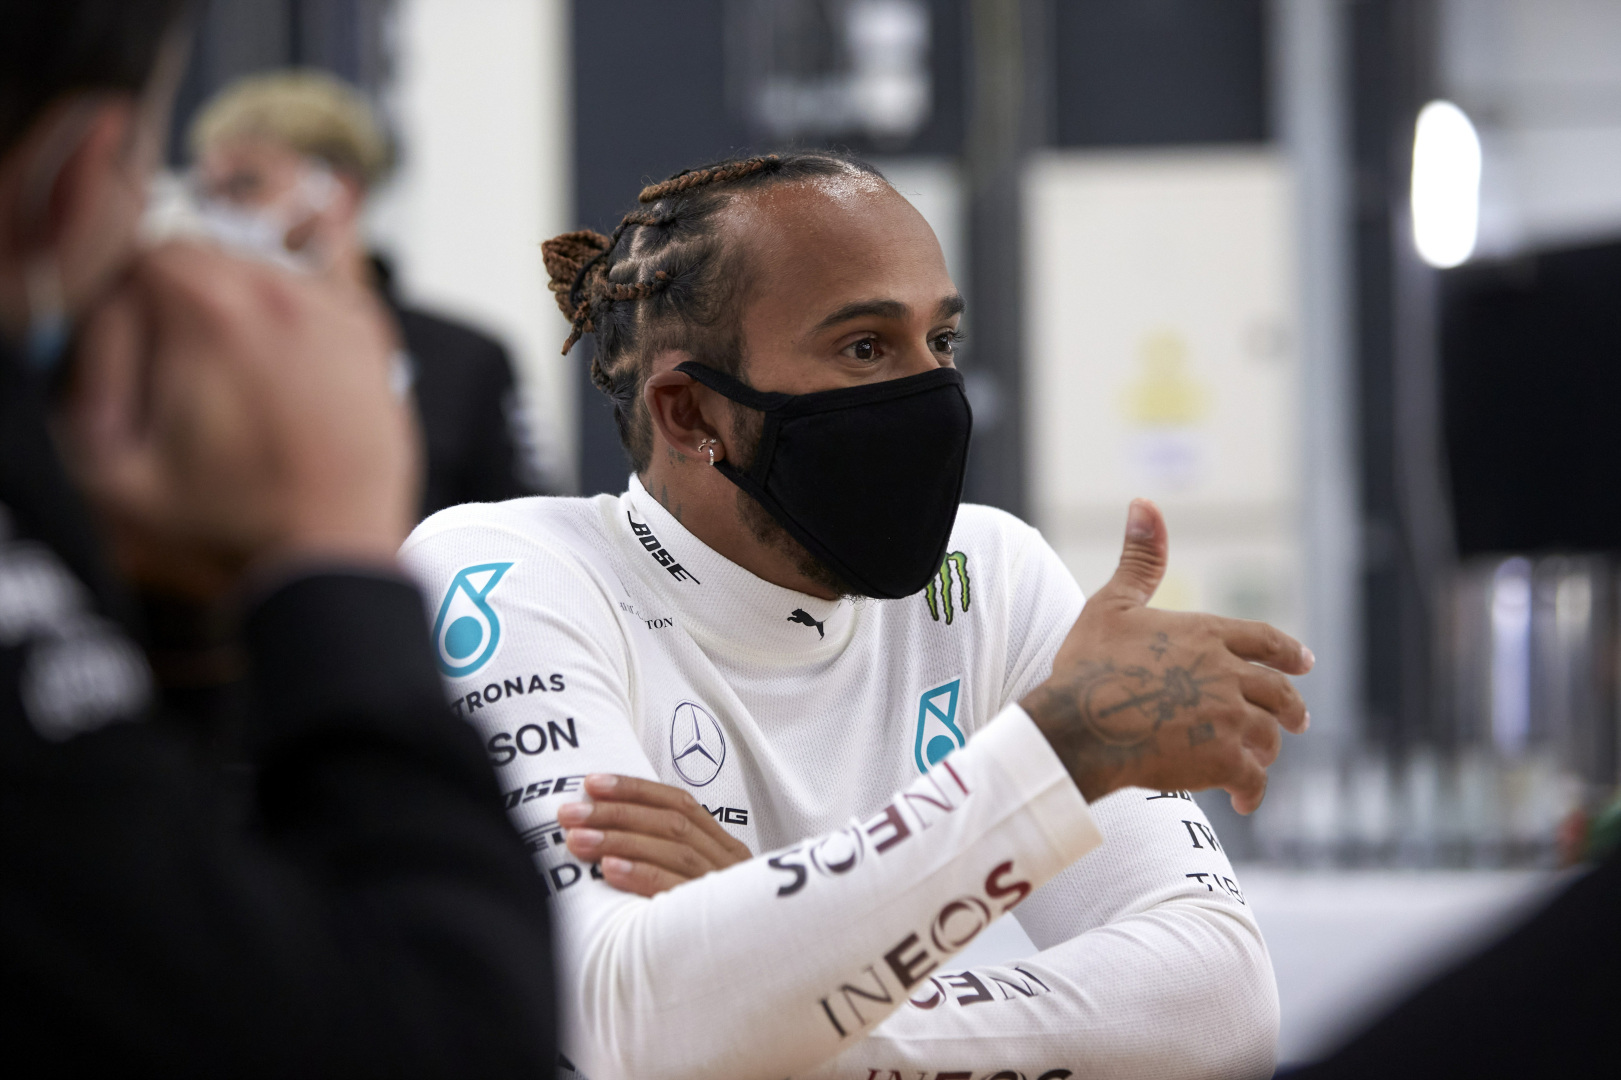 Hamilton reveals crucial impact of 'direct' communication with engineers